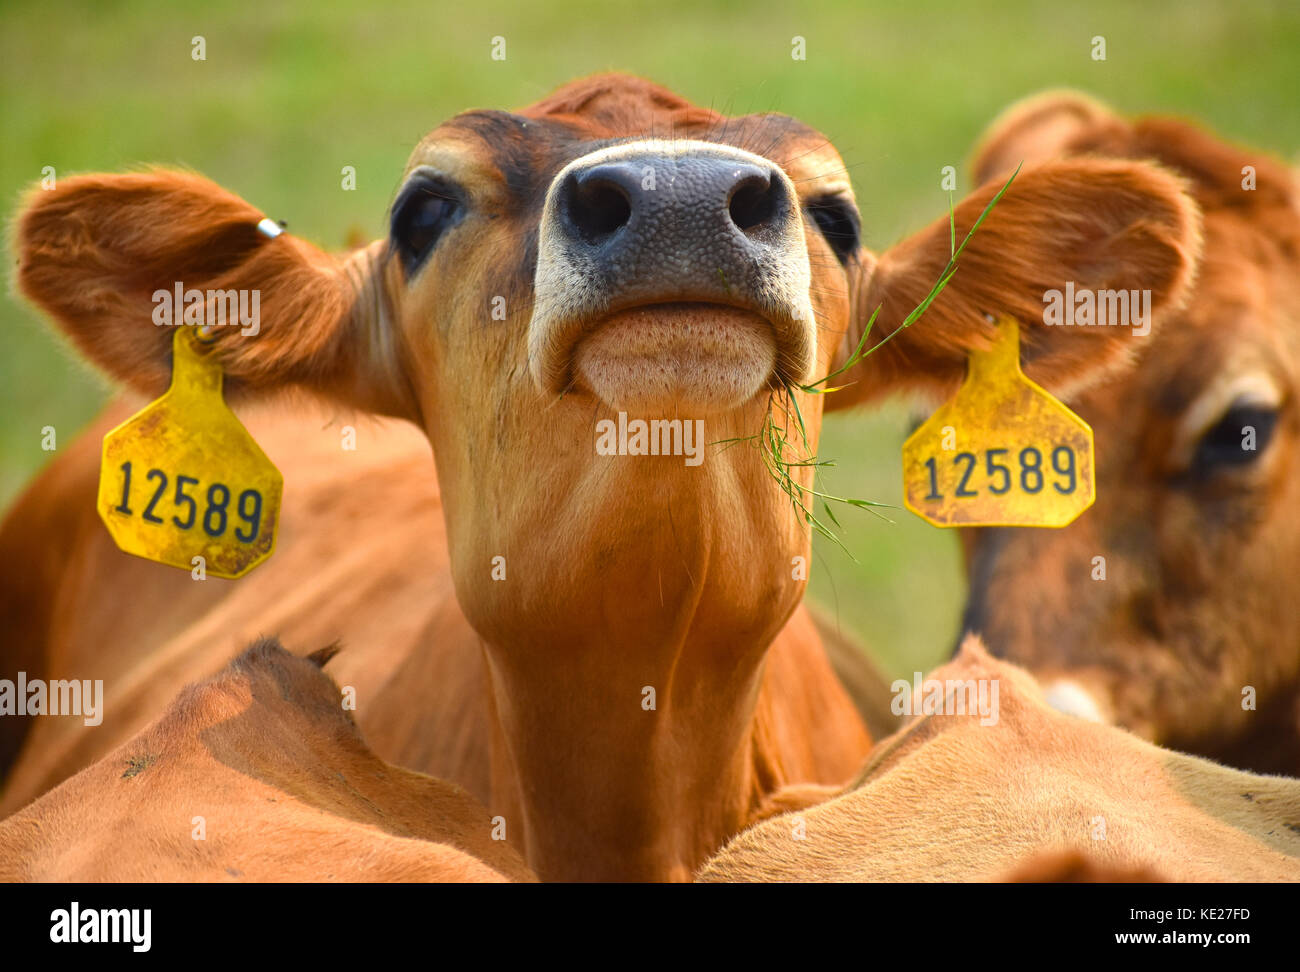 Cow closeup with identification tags in the ears. - Stock Image